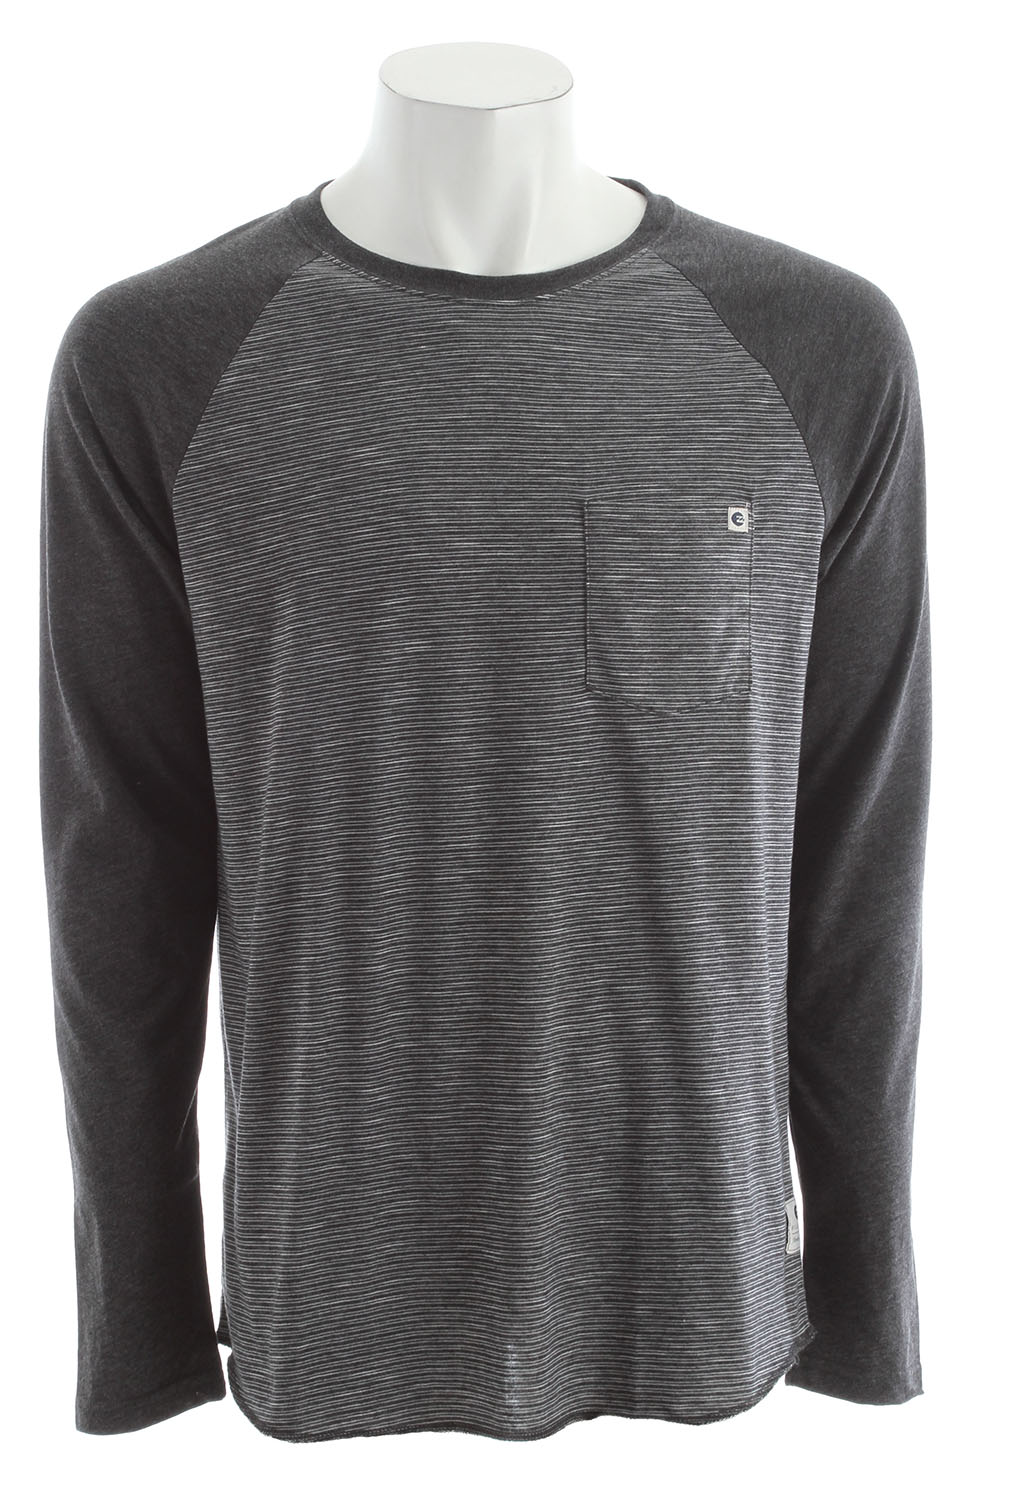 Surf Key Features of the Billabong Cable Raglan Shirt: Regular fit striped long sleeve raglan with a front pocket, essential woven label and pvc-free heat sealed neck label Made with 52% polyester/48% cotton - $32.00